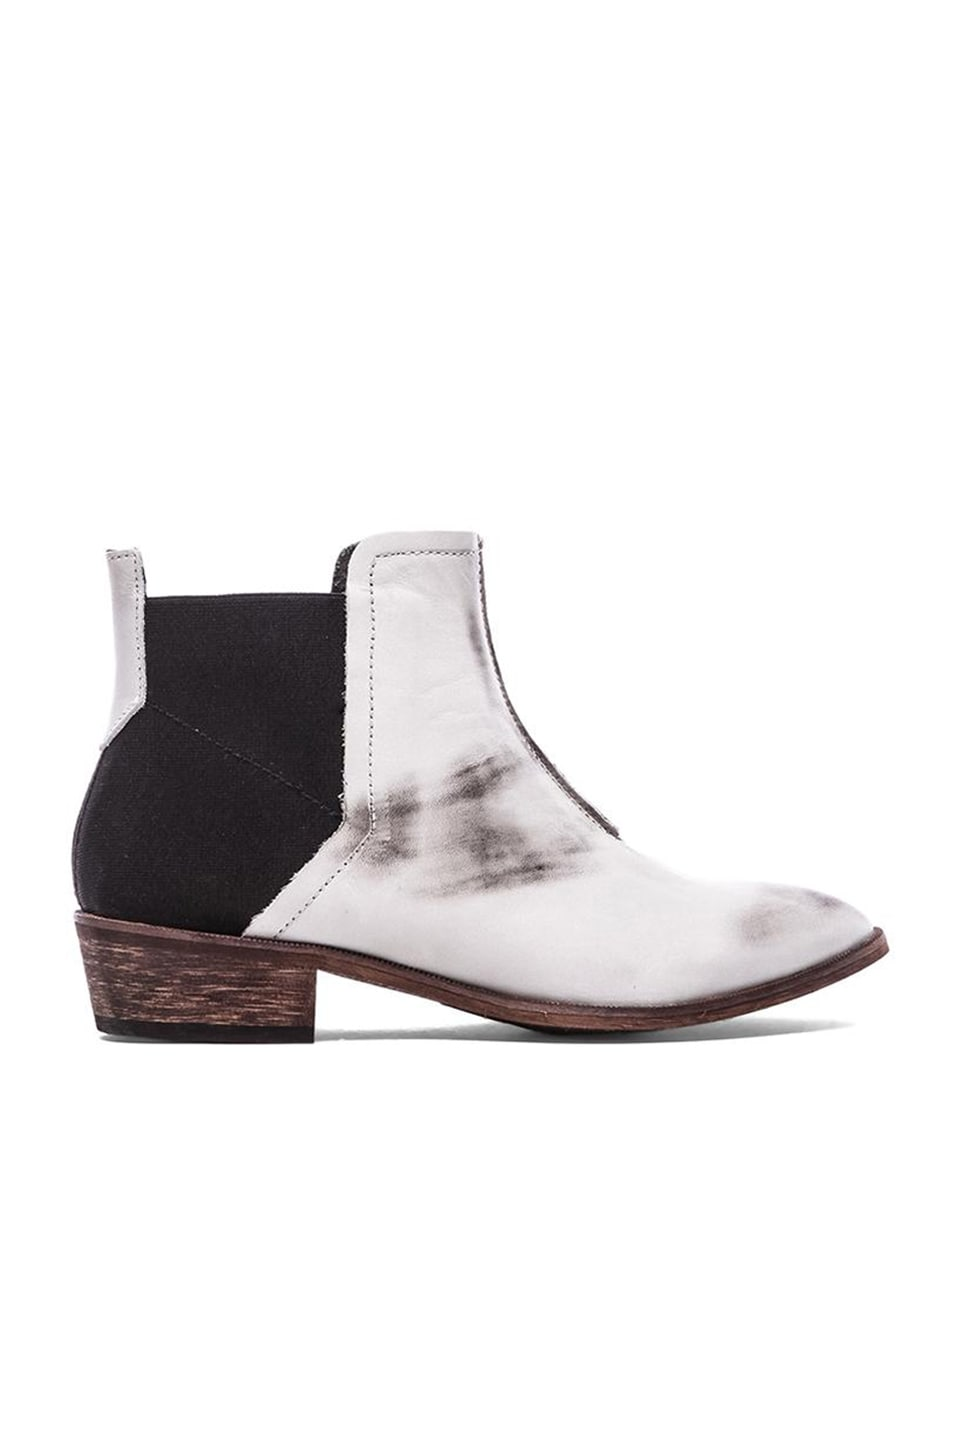 Free People Dark Horse Ankle Boot in White